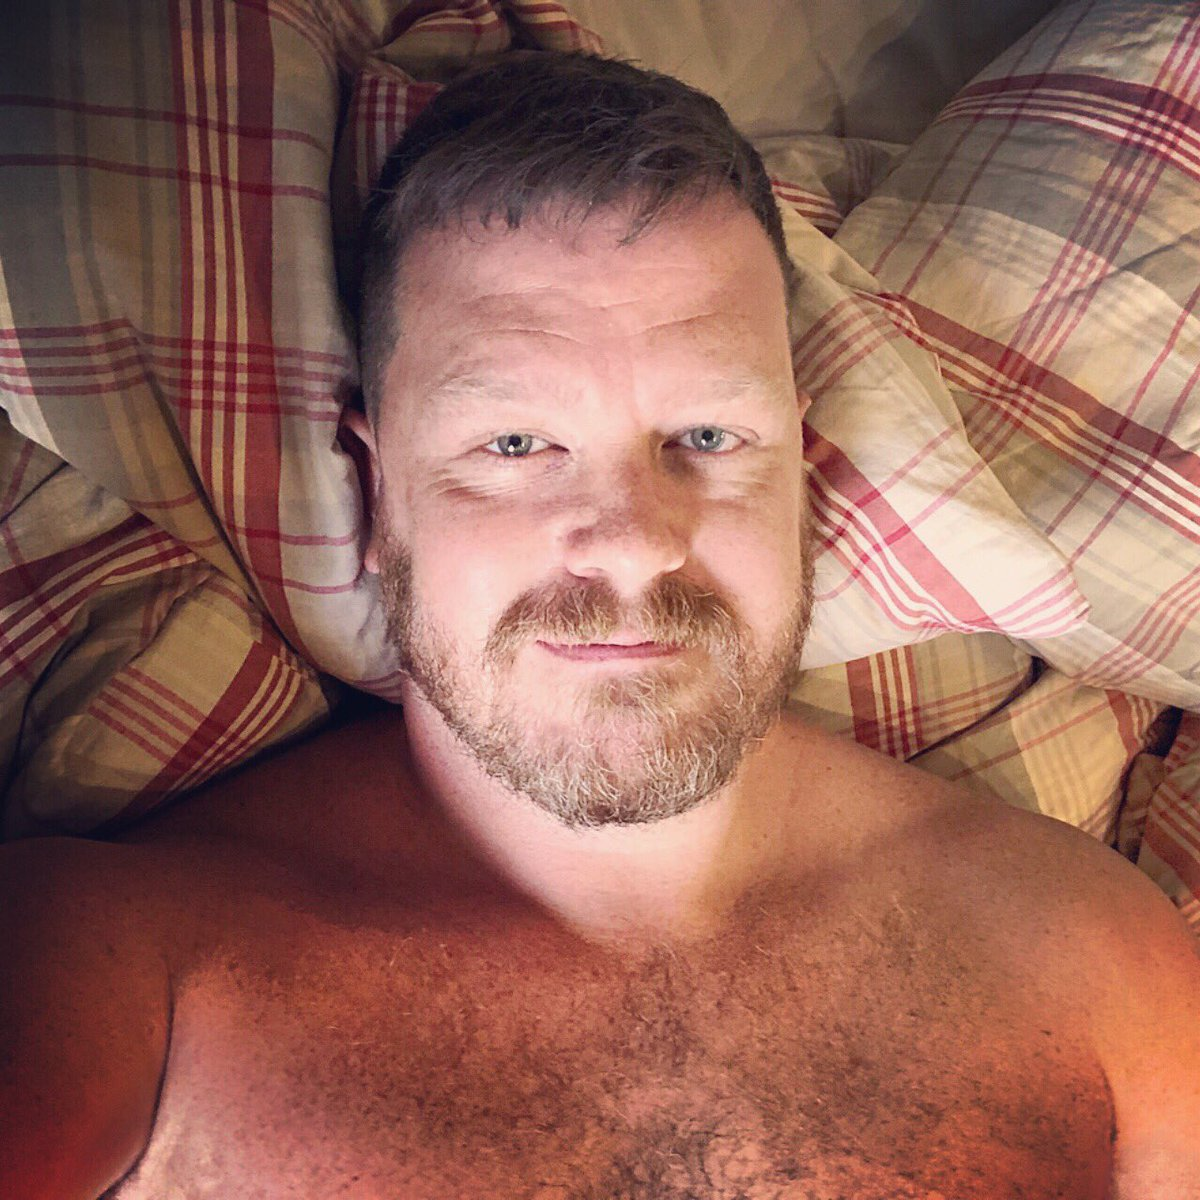 Bears Gays Videos thebeardedhomo hashtag on twitter